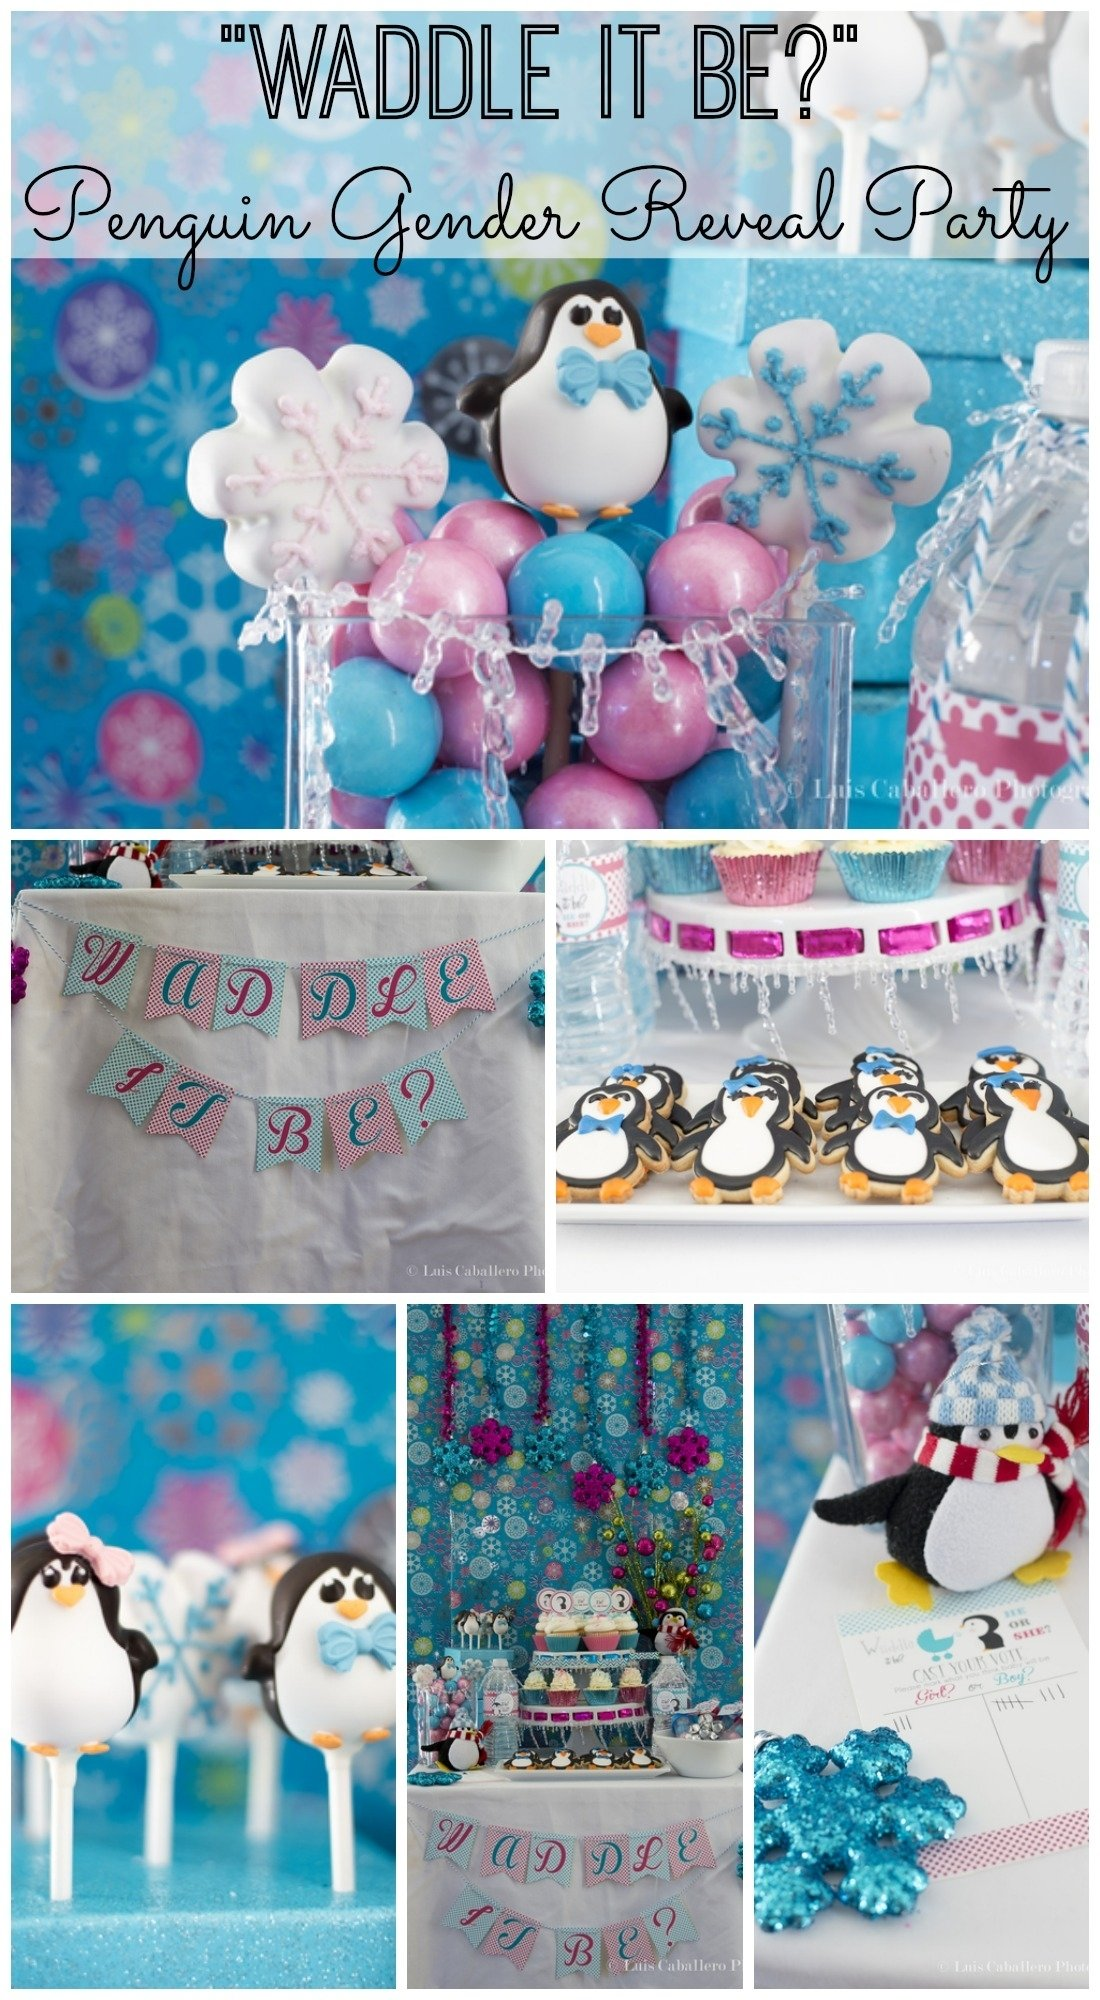 10 Trendy Gender Reveal Baby Shower Ideas waddle it be gender reveal baby shower great idea for winter see 1 2020